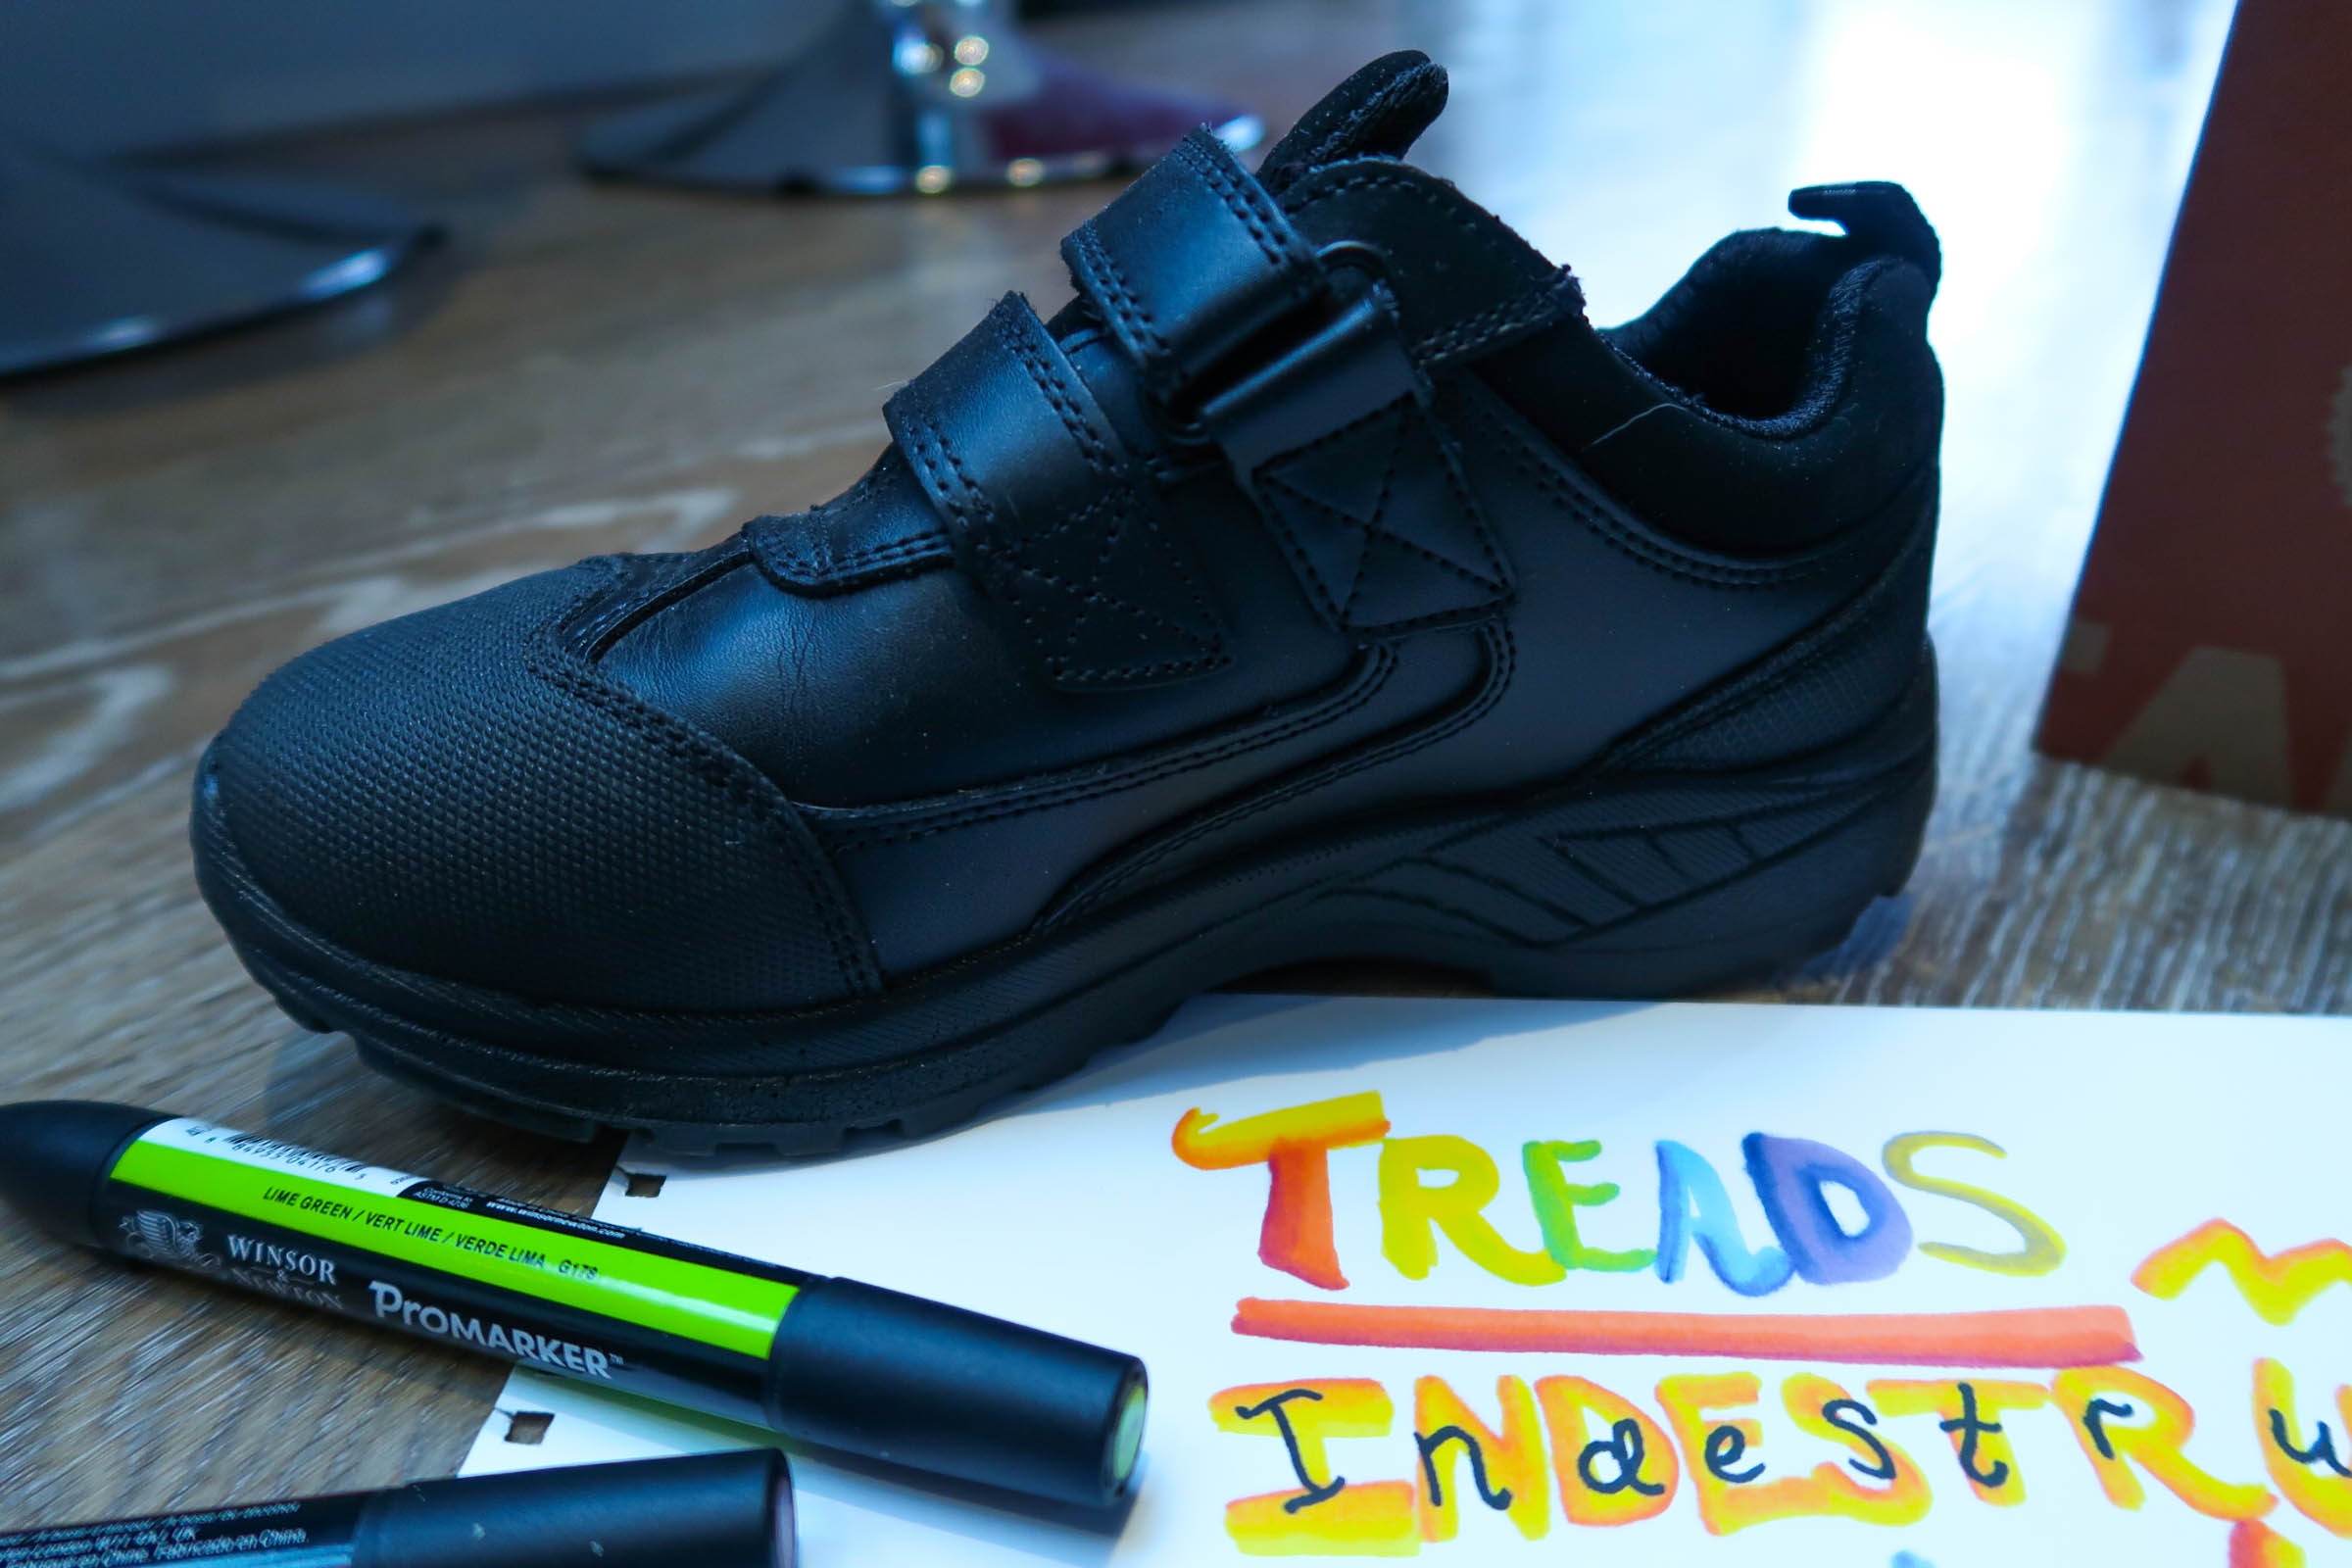 Treads indestructible school shoes